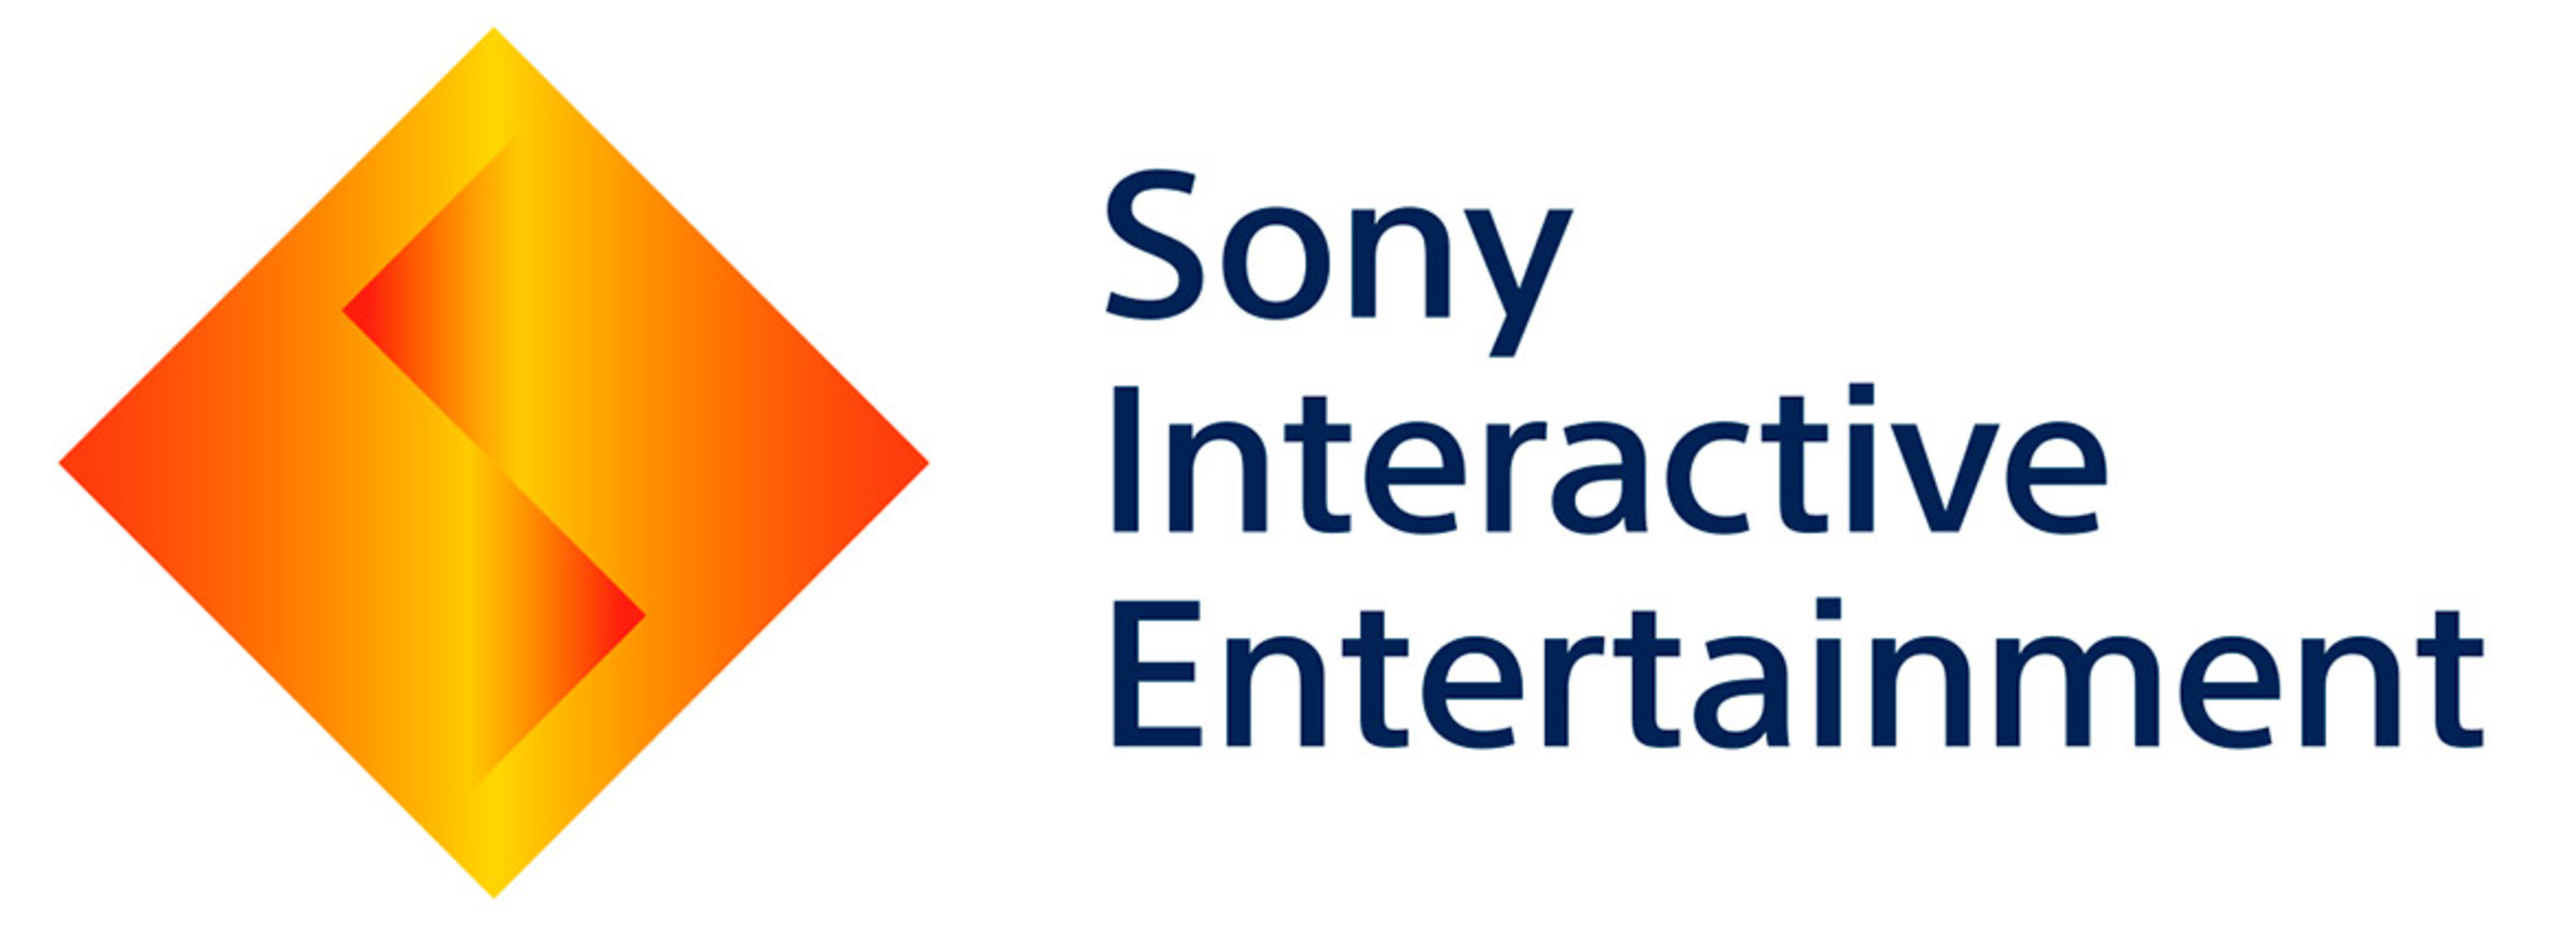 Sony Computer Entertainment corporate logo